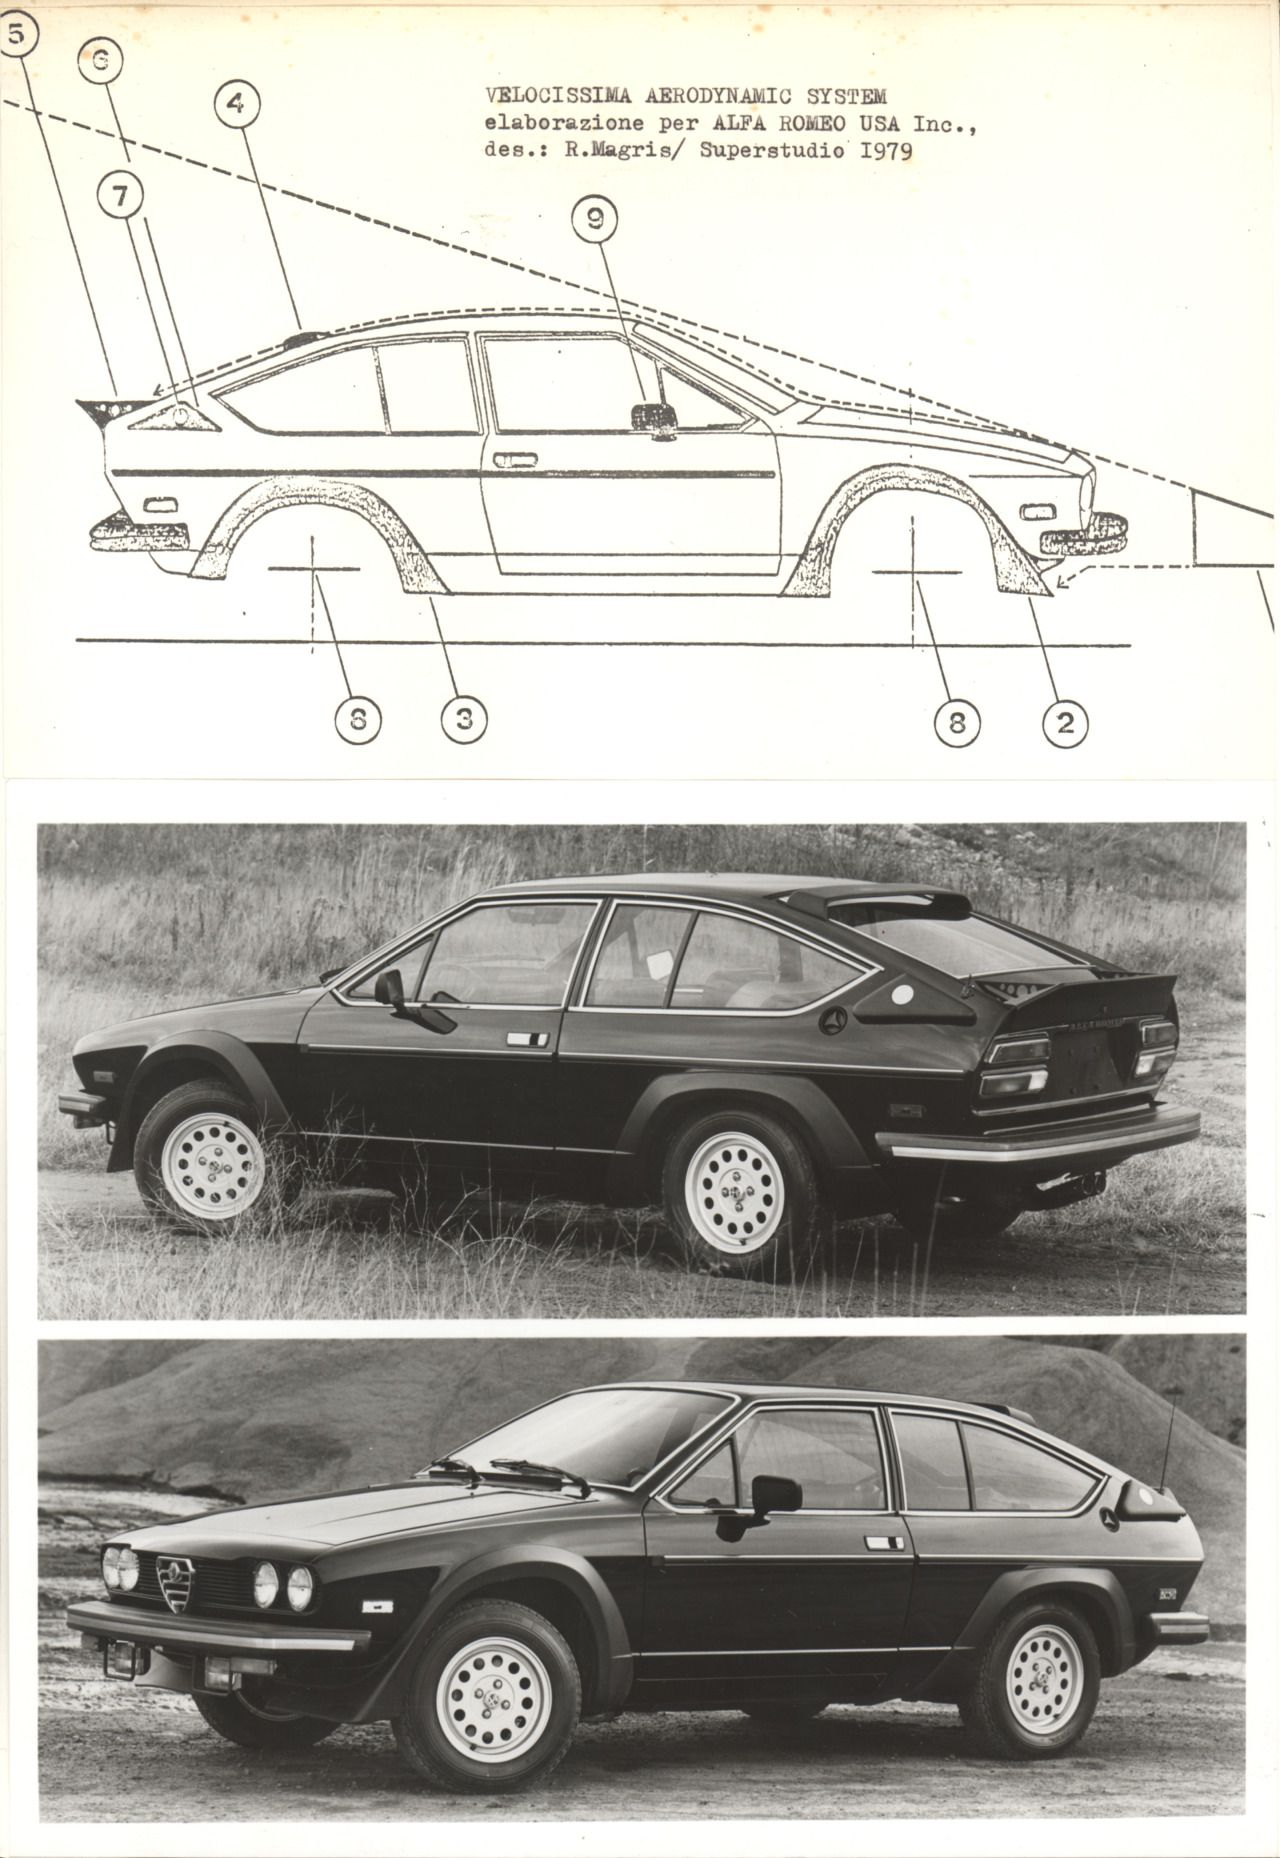 Alfa Romeo Gtv6 Repair Manual User Guide That Easy To Read Manuals Images Gallery